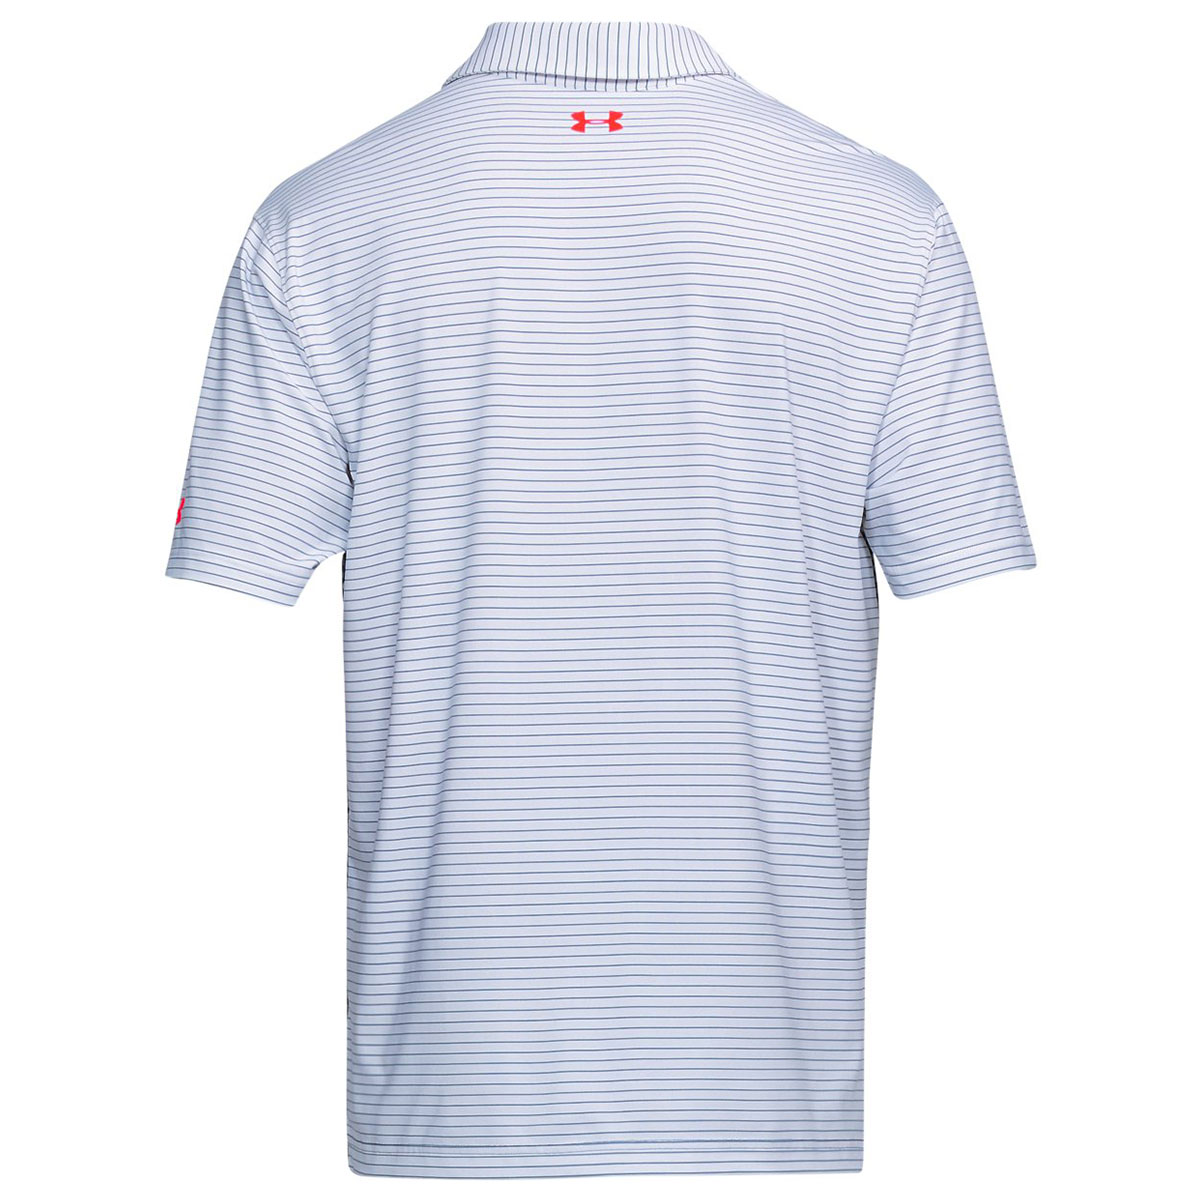 Under-Armour-Mens-Crestable-Playoff-Performance-Golf-Polo-Shirt-50-OFF-RRP thumbnail 34